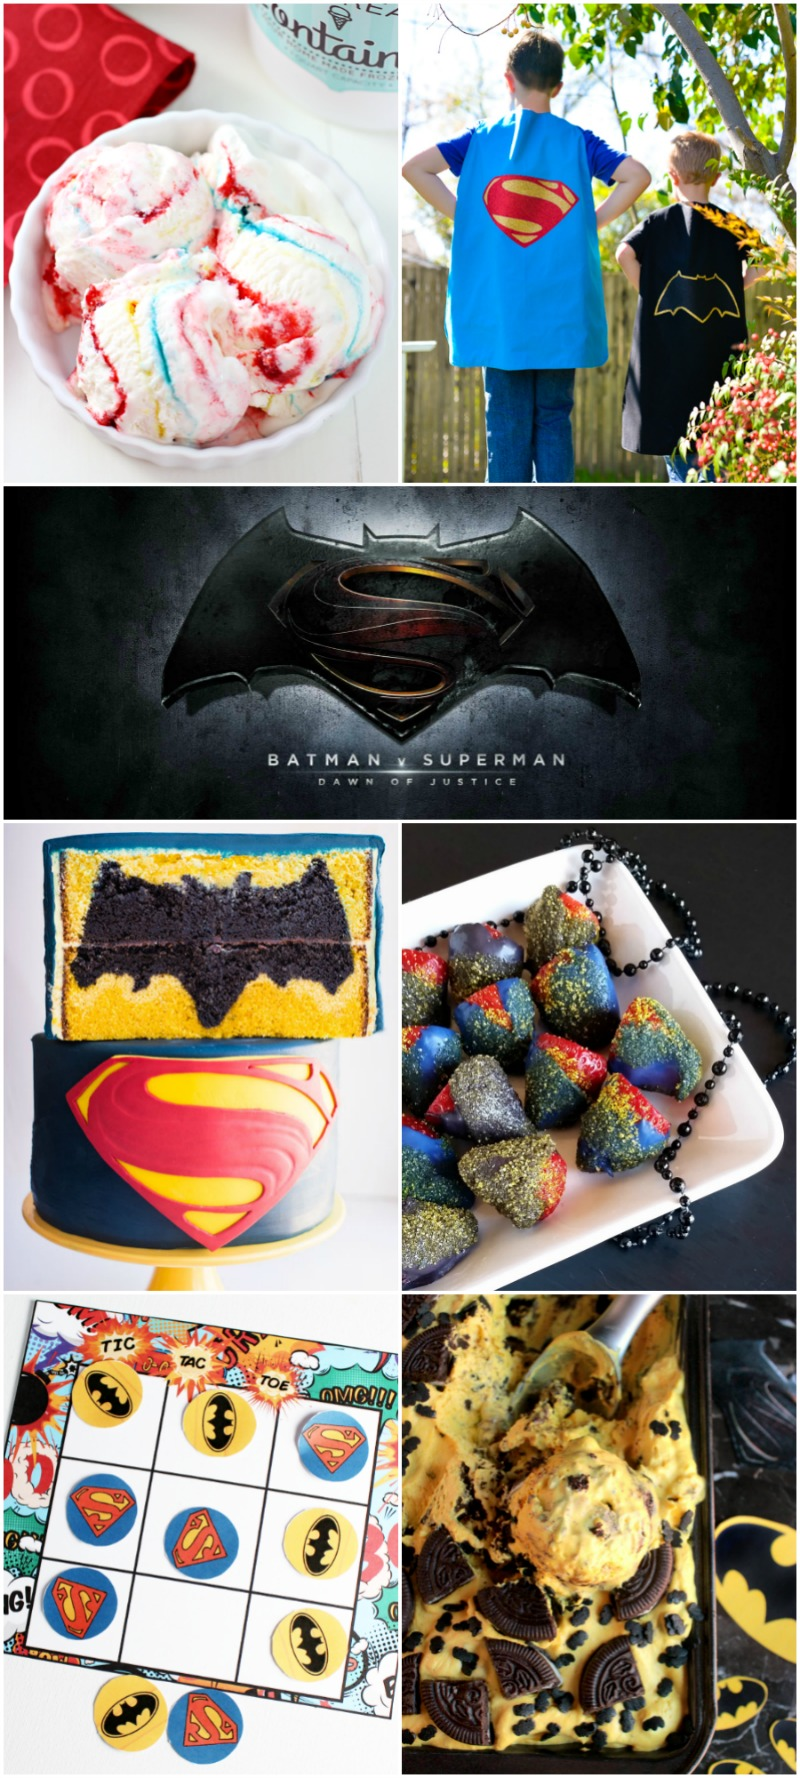 Batman vs. Superman party ideas - includes cake, candy, printable games, ice cream, and more!